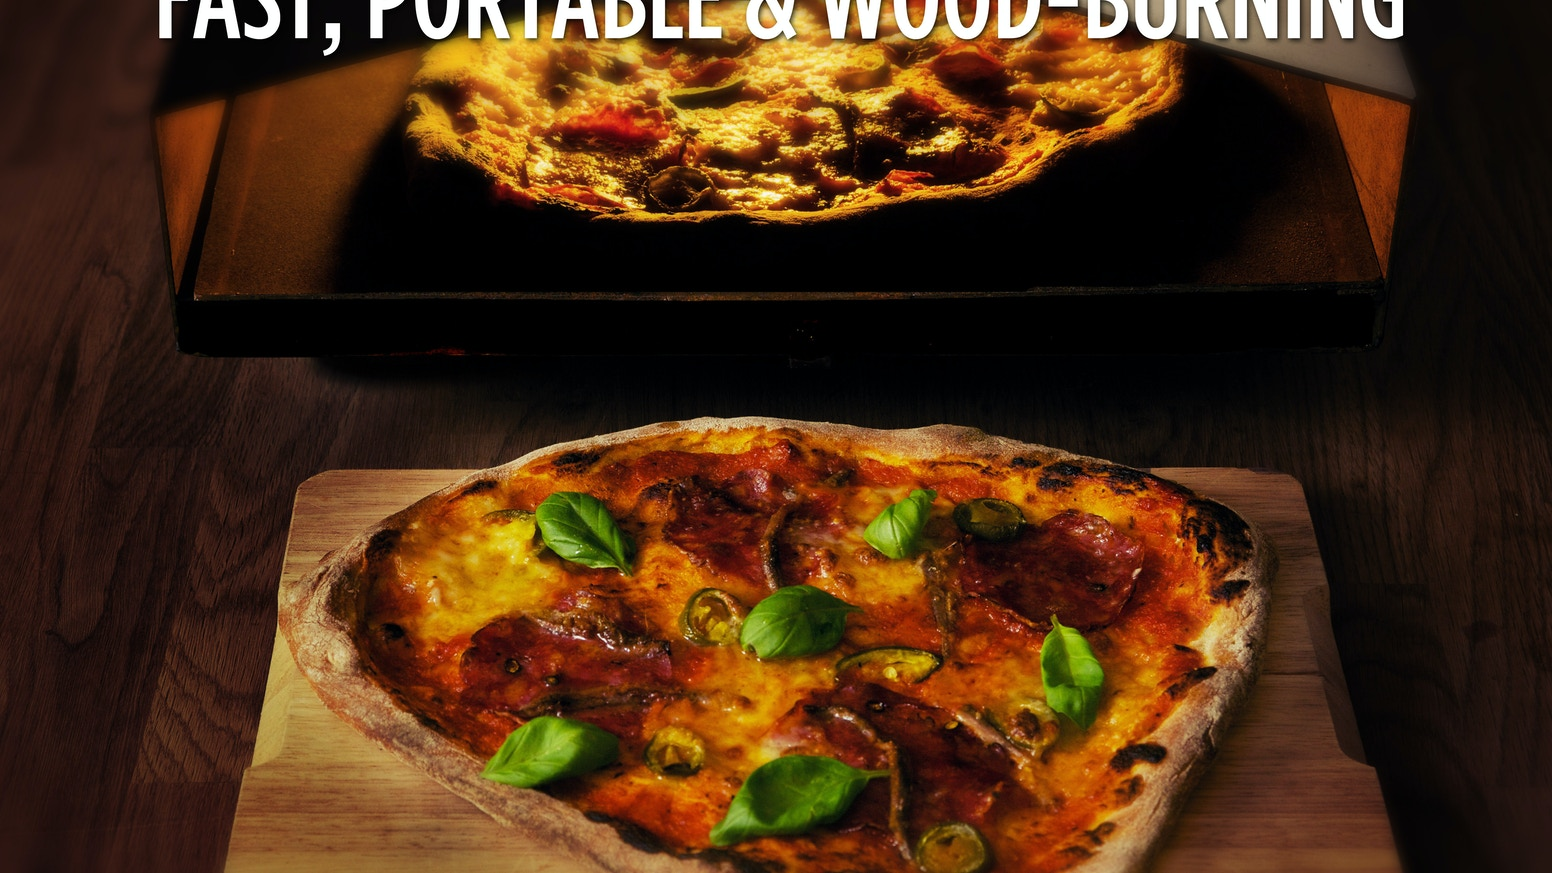 Ooni (formerly Uuni). It's like a traditional wood-fired pizza oven but it doesn't cost the earth. And it's much smaller and lighter. Powered by wood.